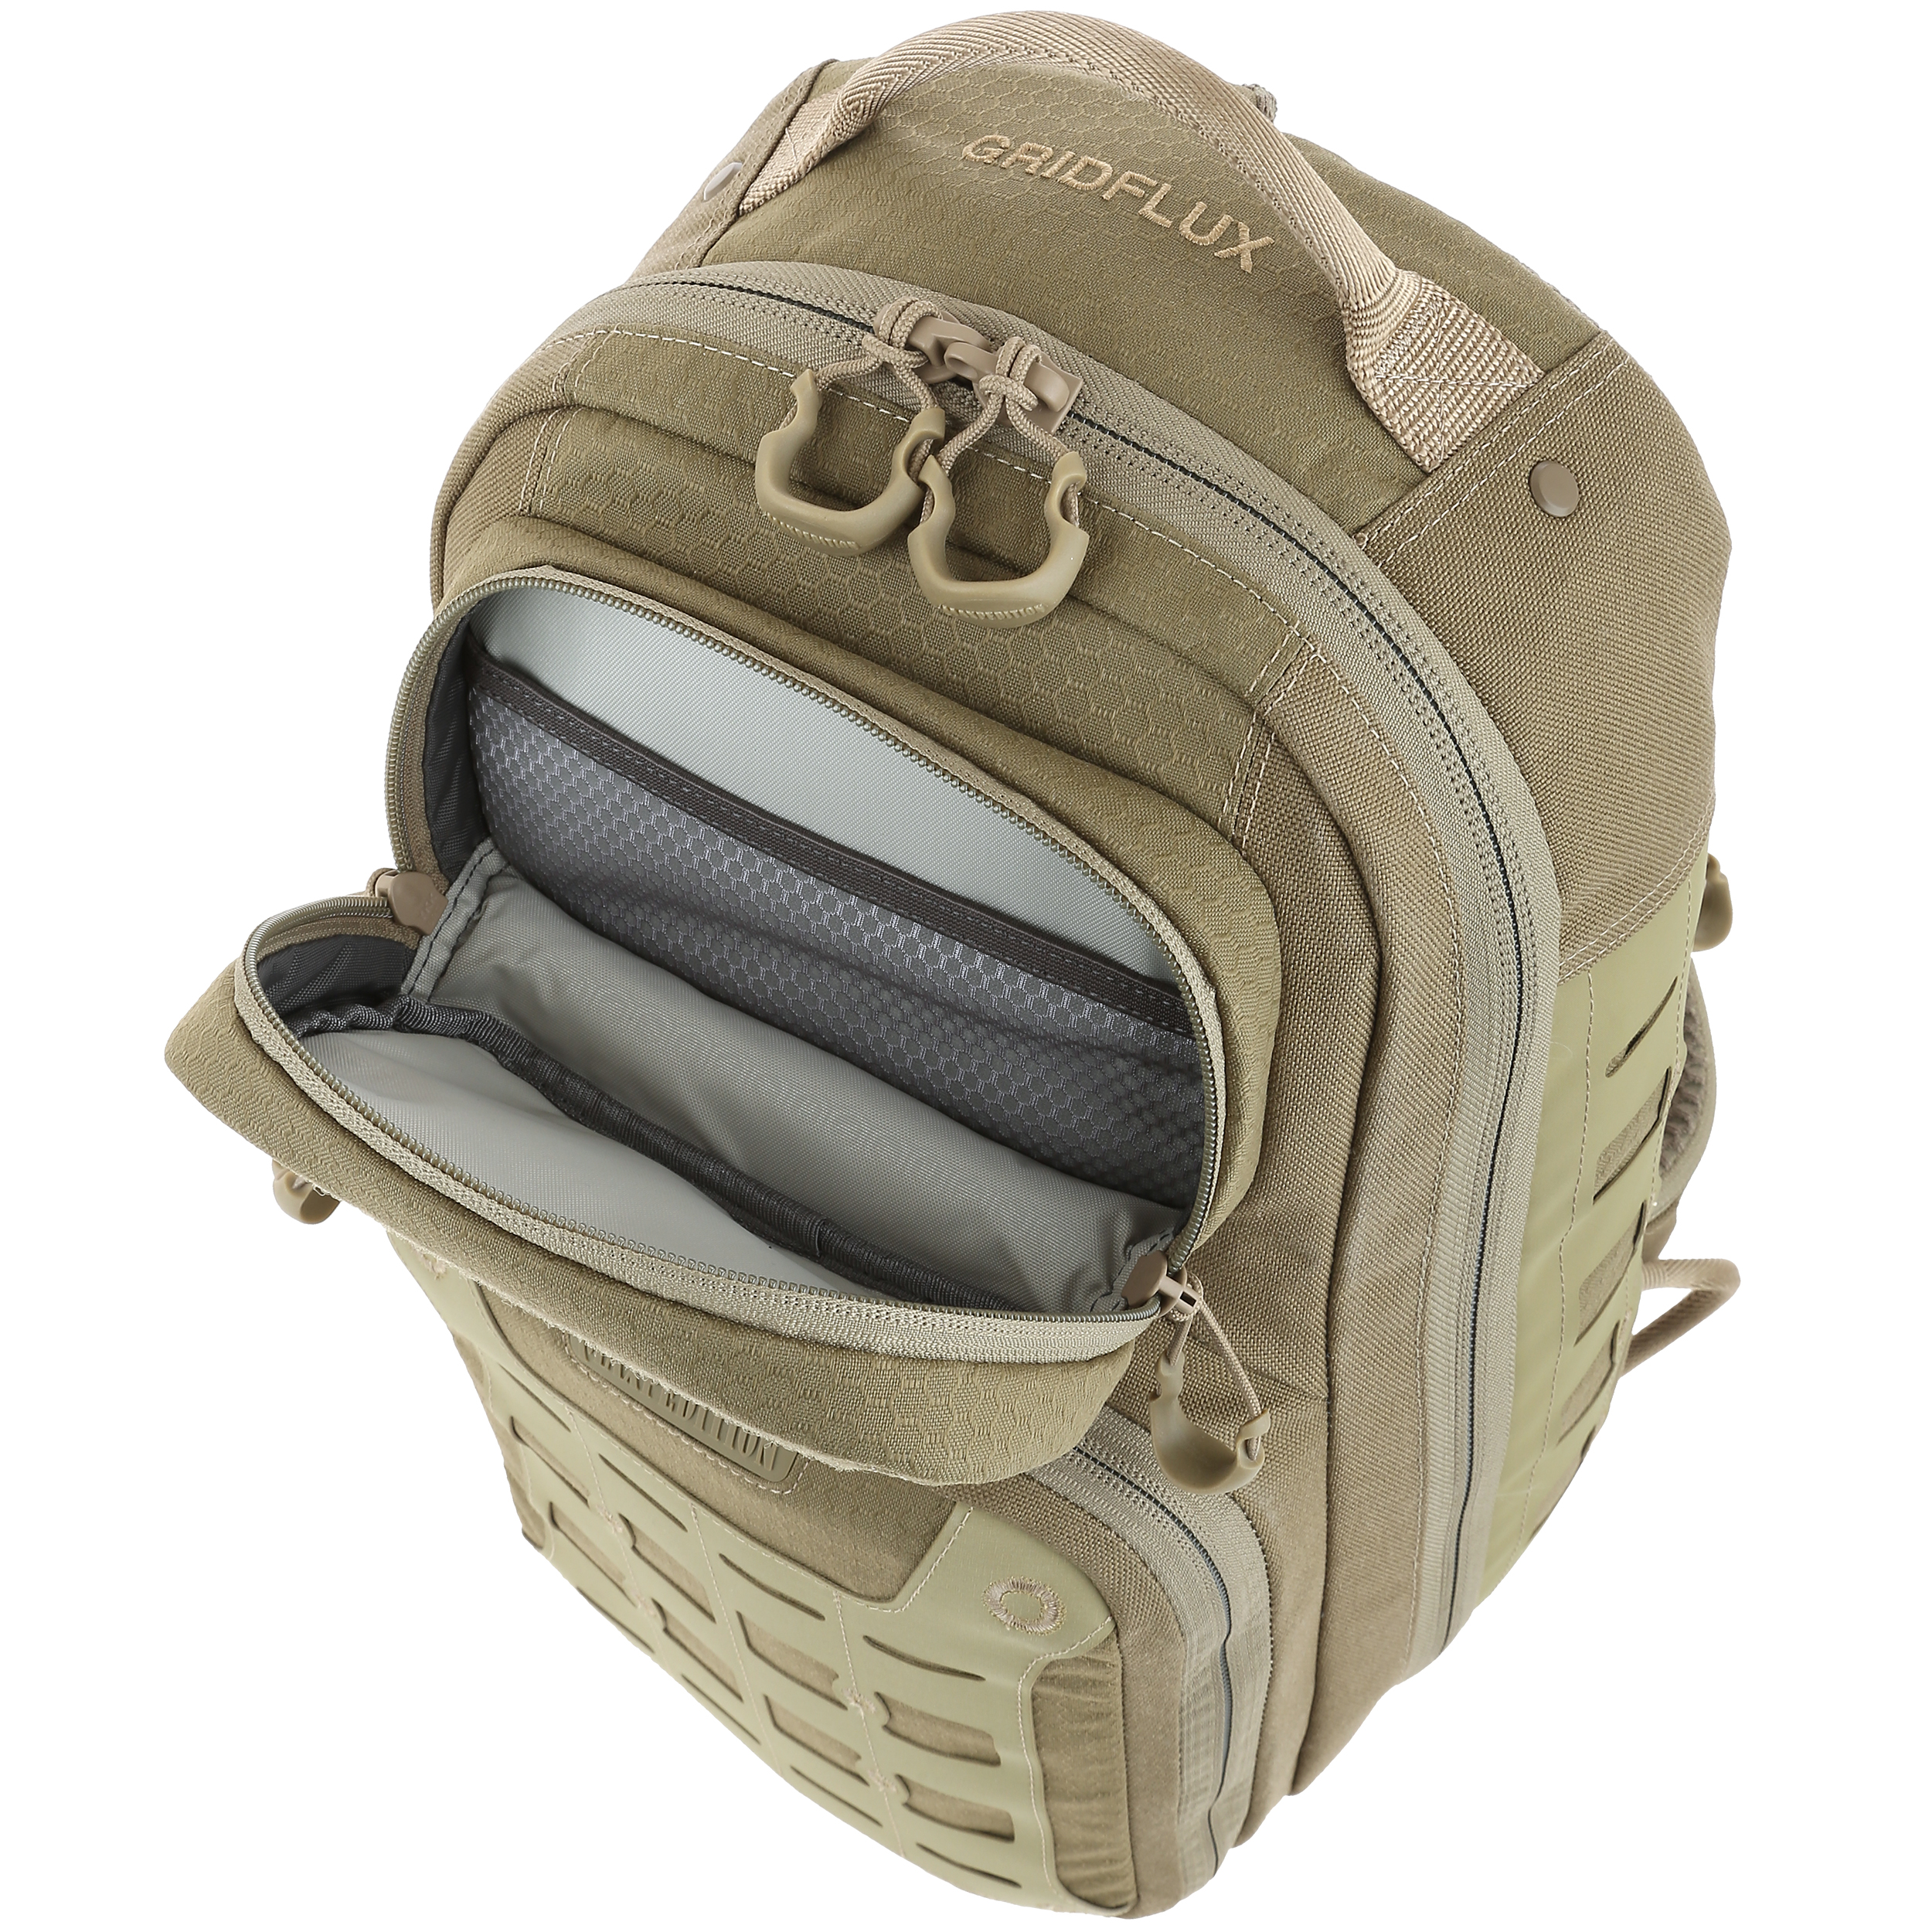 Balo Maxpedition GRIDFLUX v2.0  – Black